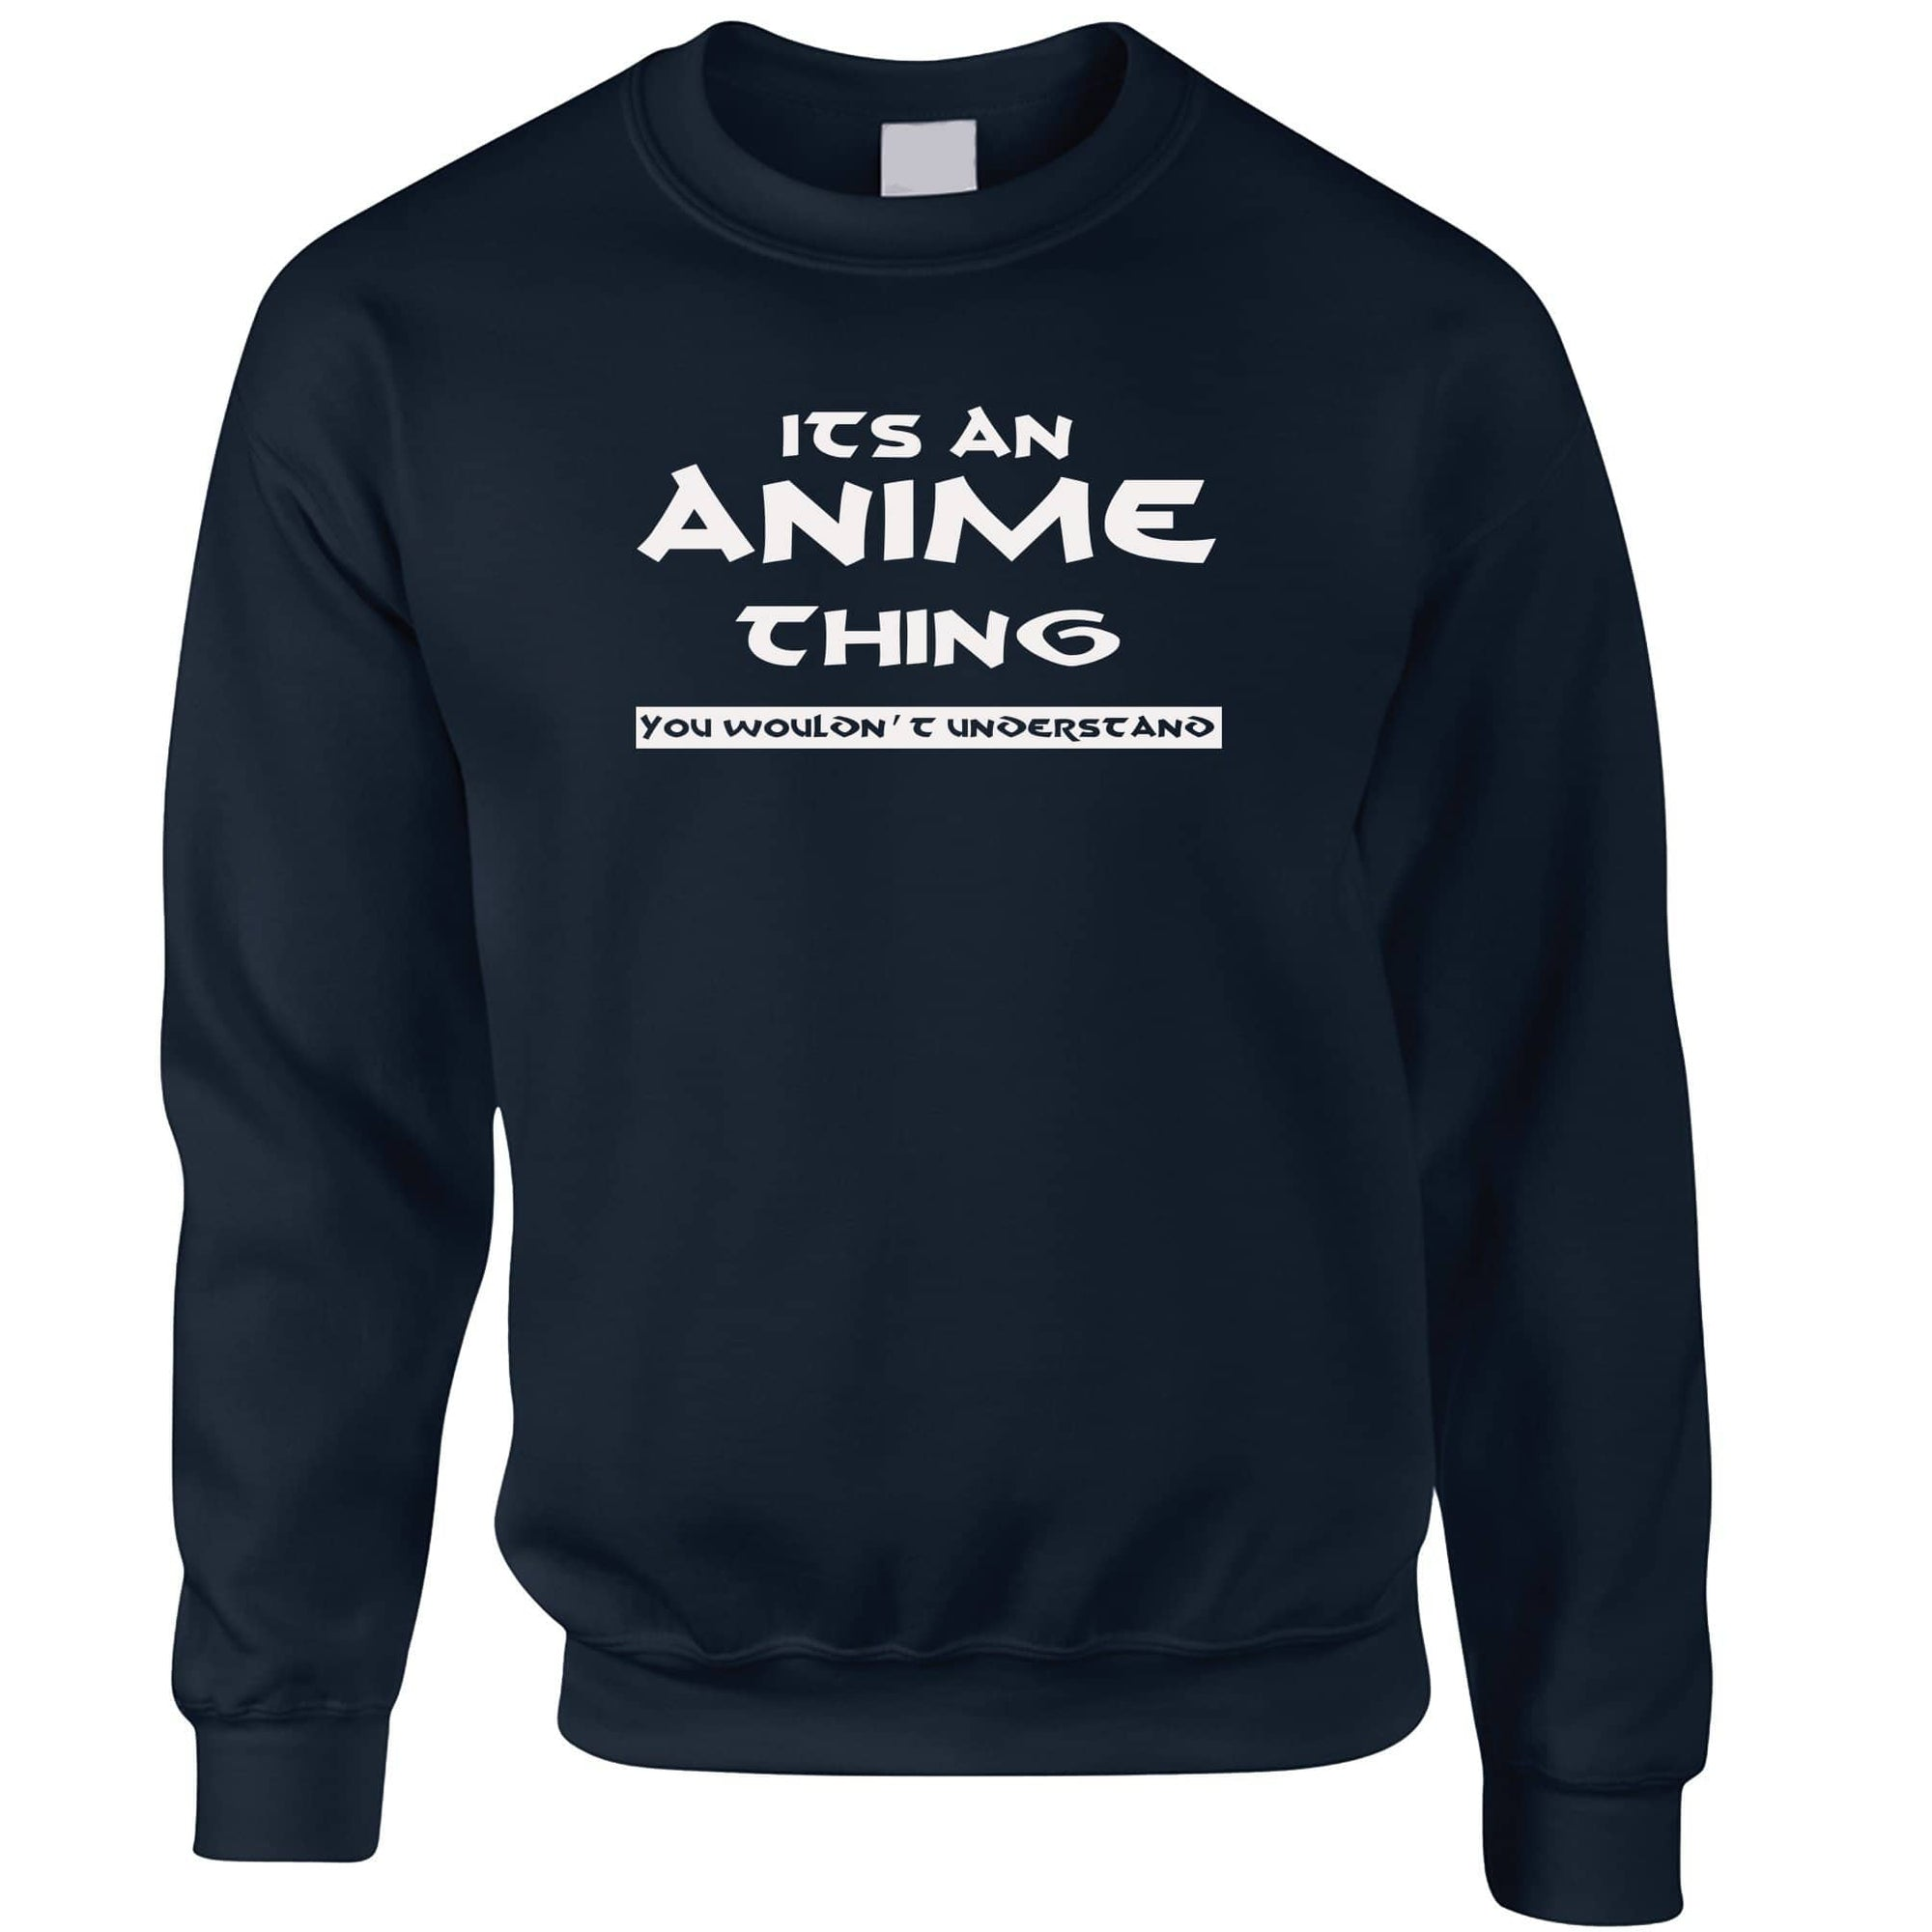 Funny Nerdy Sweatshirt Jumper It's An Anime Thing Slogan